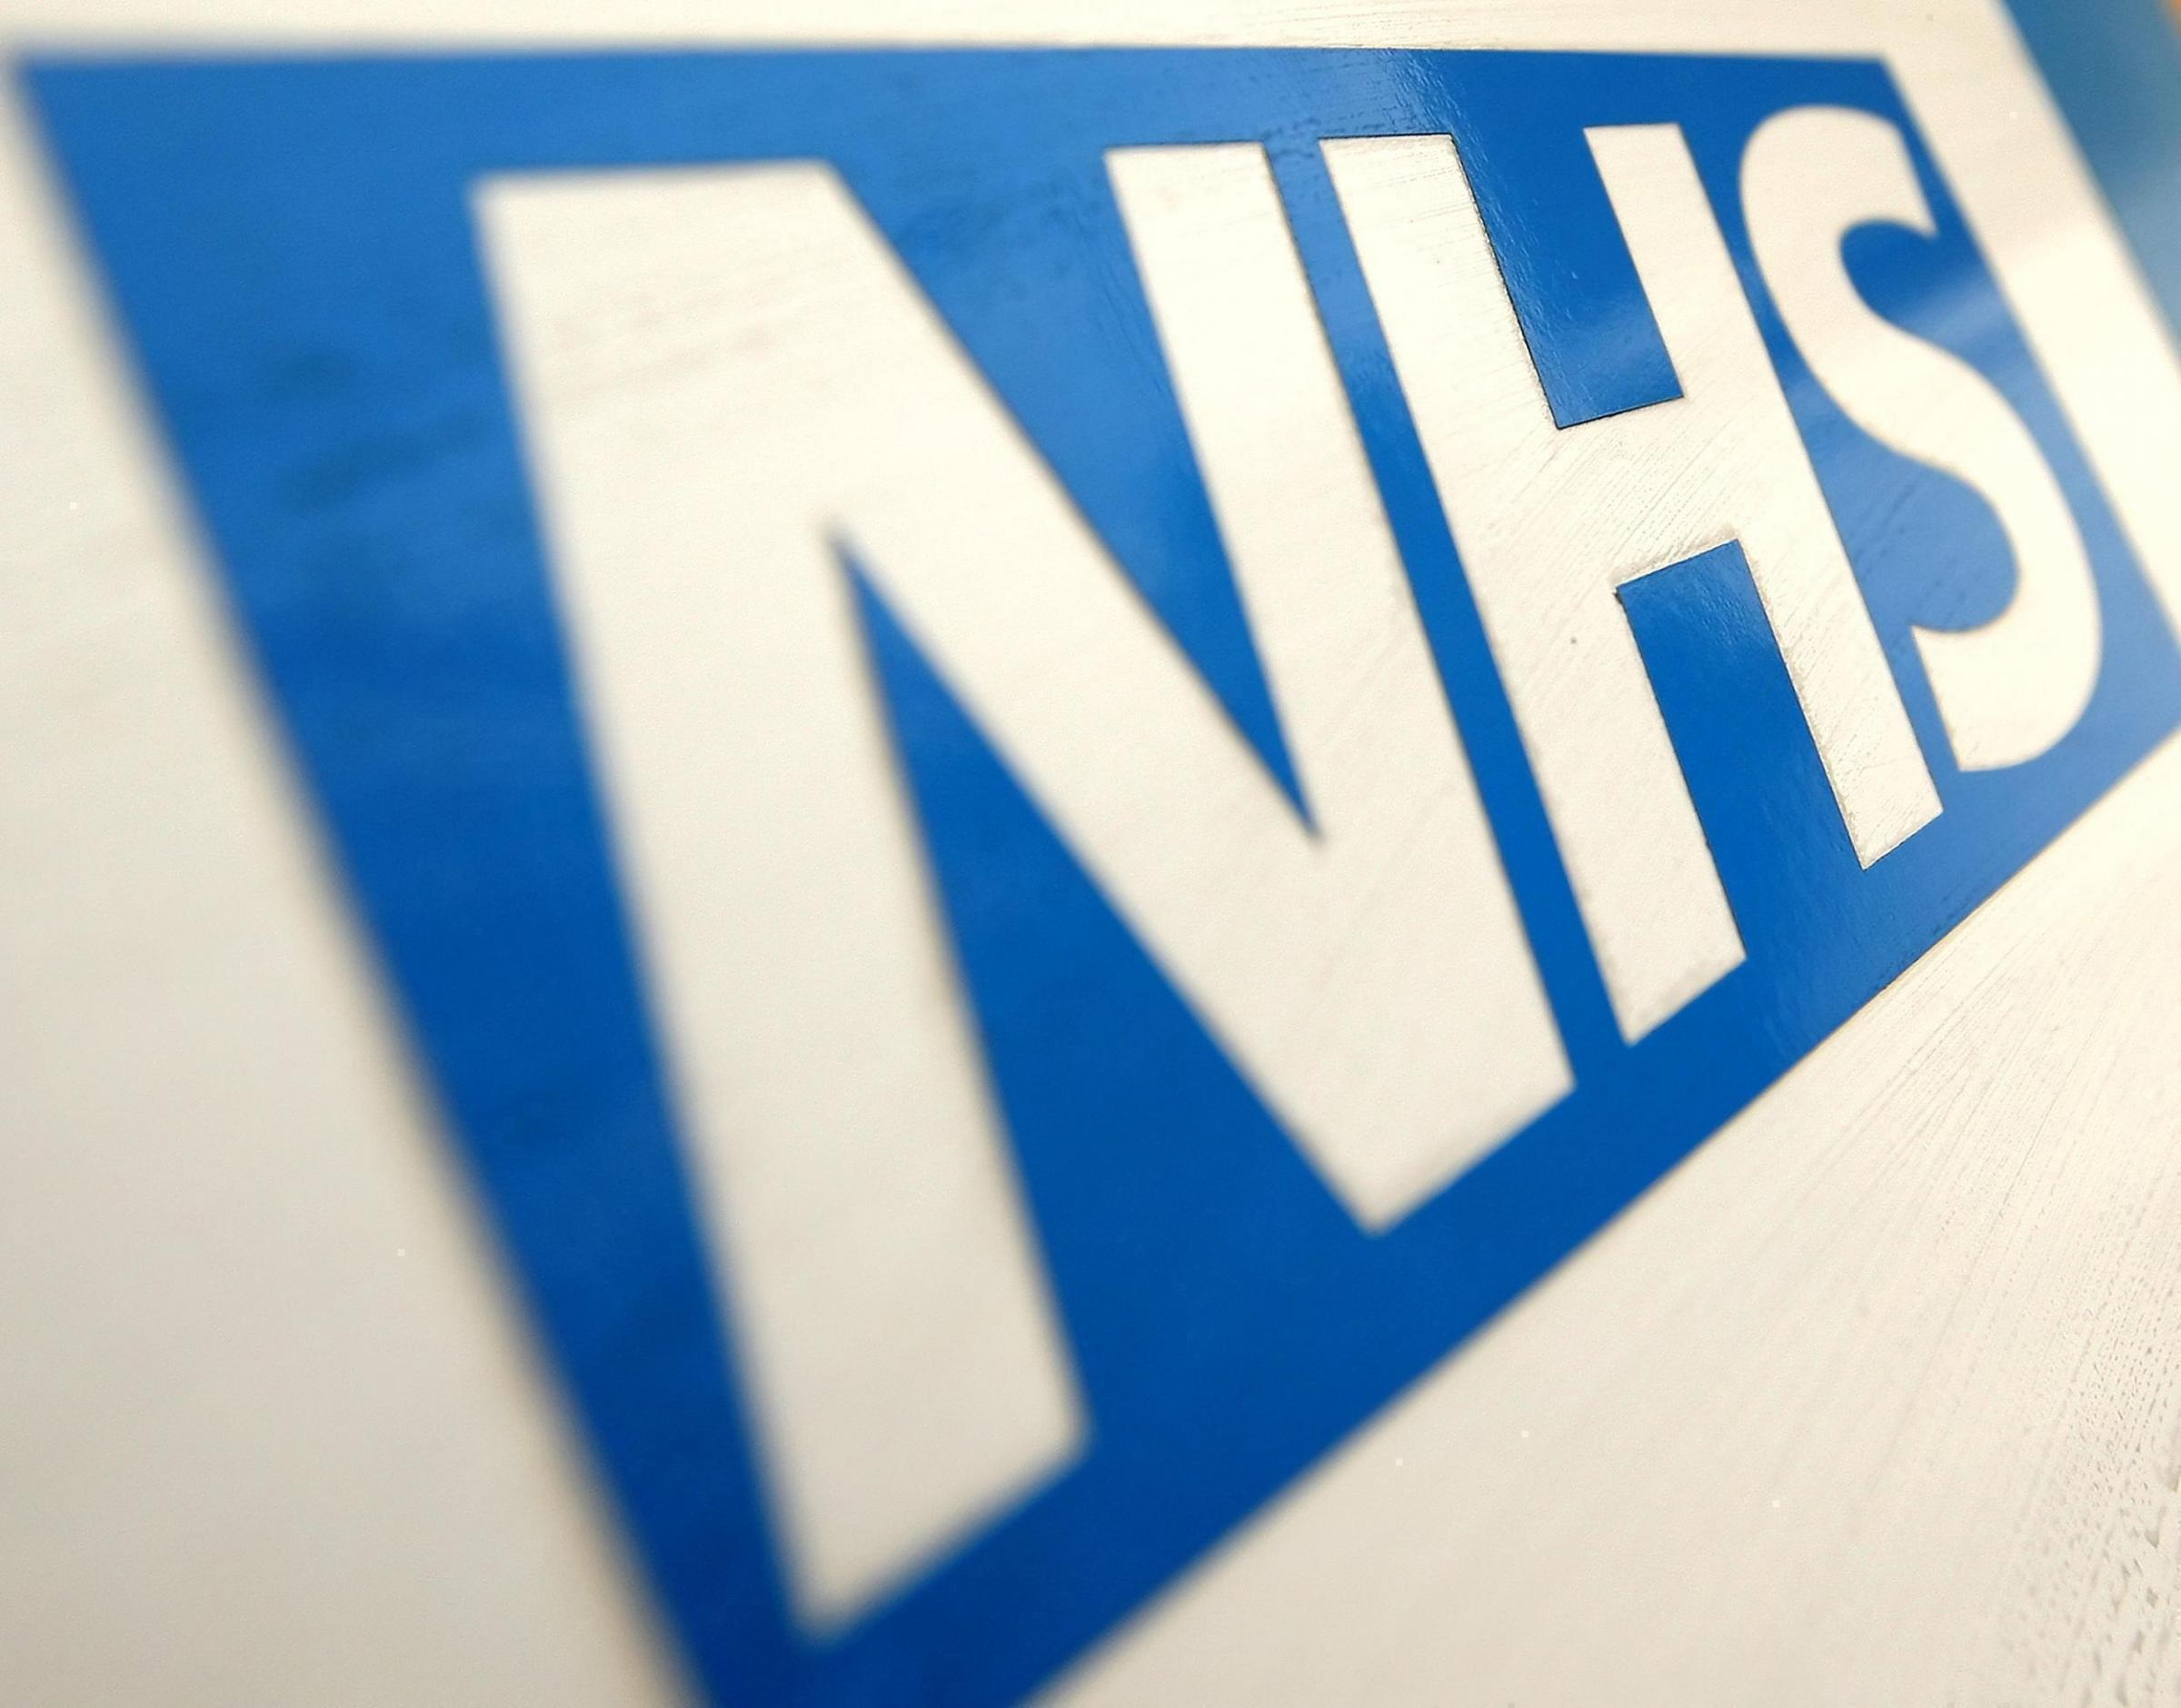 NHS data pool plan put on hold